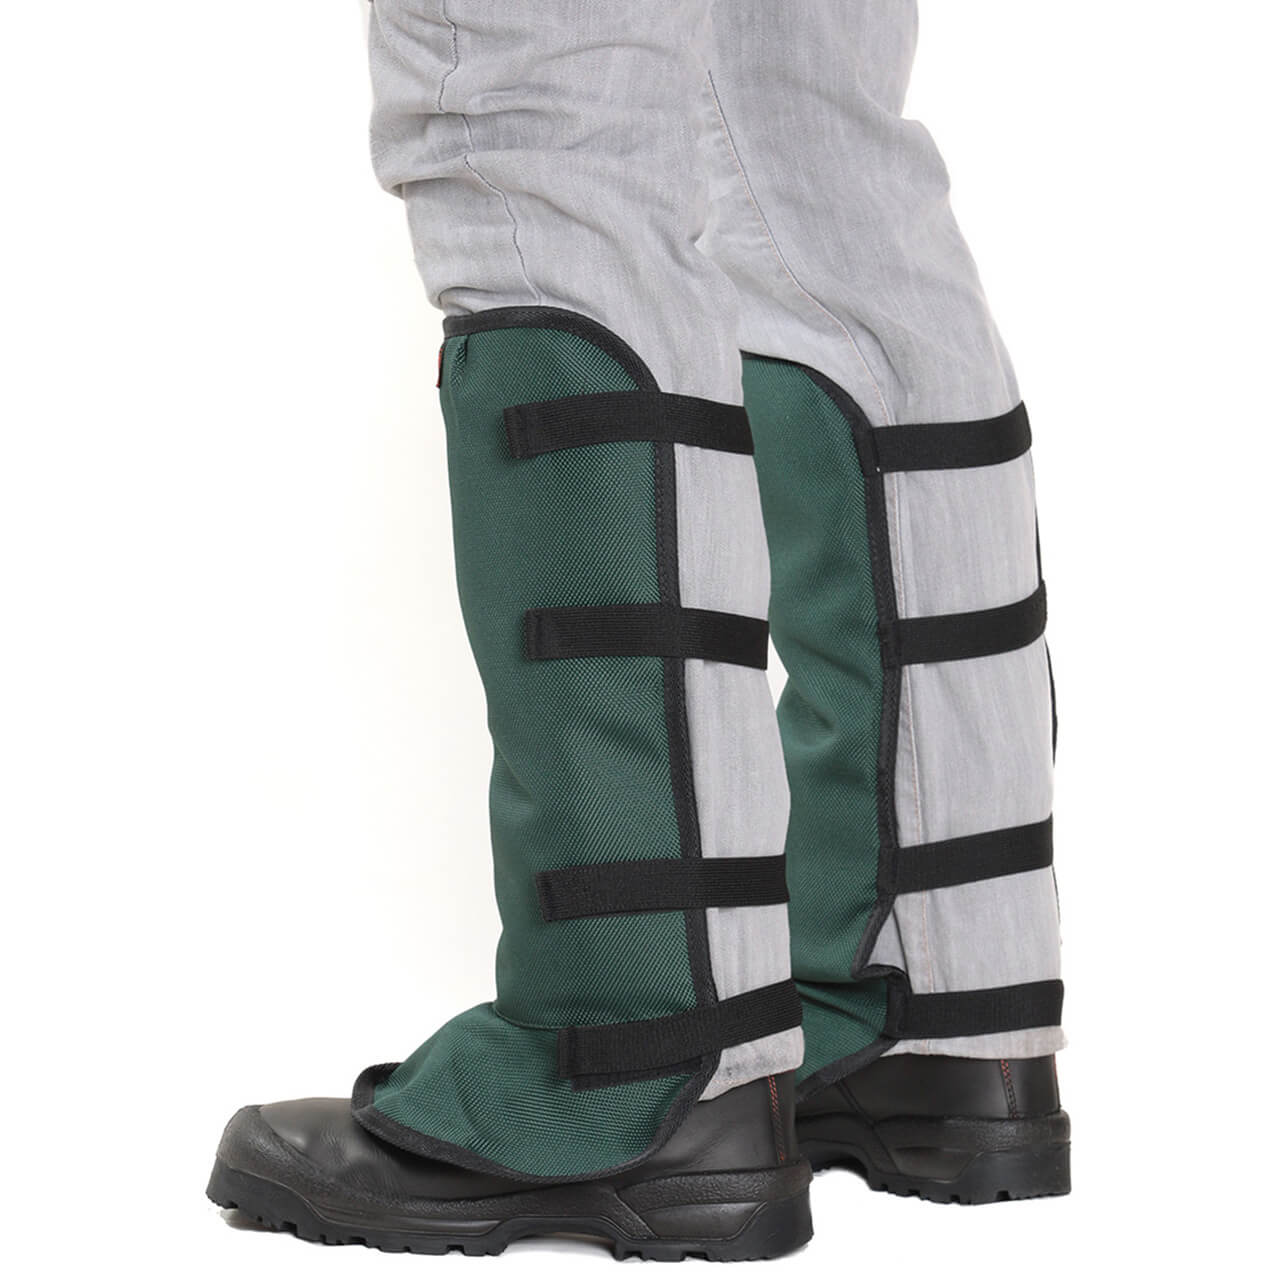 Clogger Brushcutting Chaps - Green Back